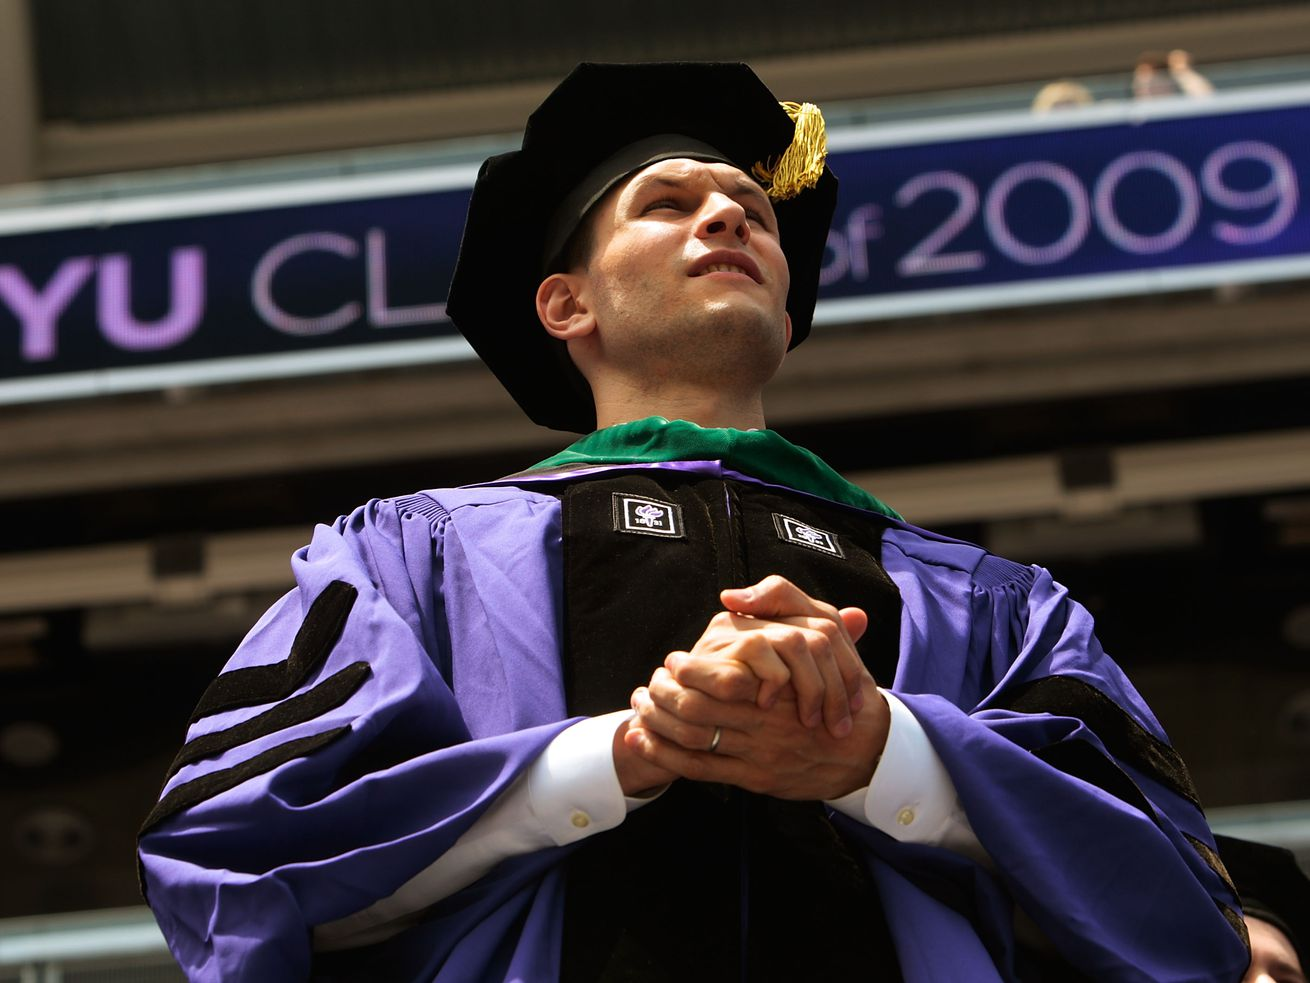 New York University medical school graduate Andrew Michael Goldsweig looks on during the 177th commencement exercises for New York University at Yankee Stadium on May 13, 2009.